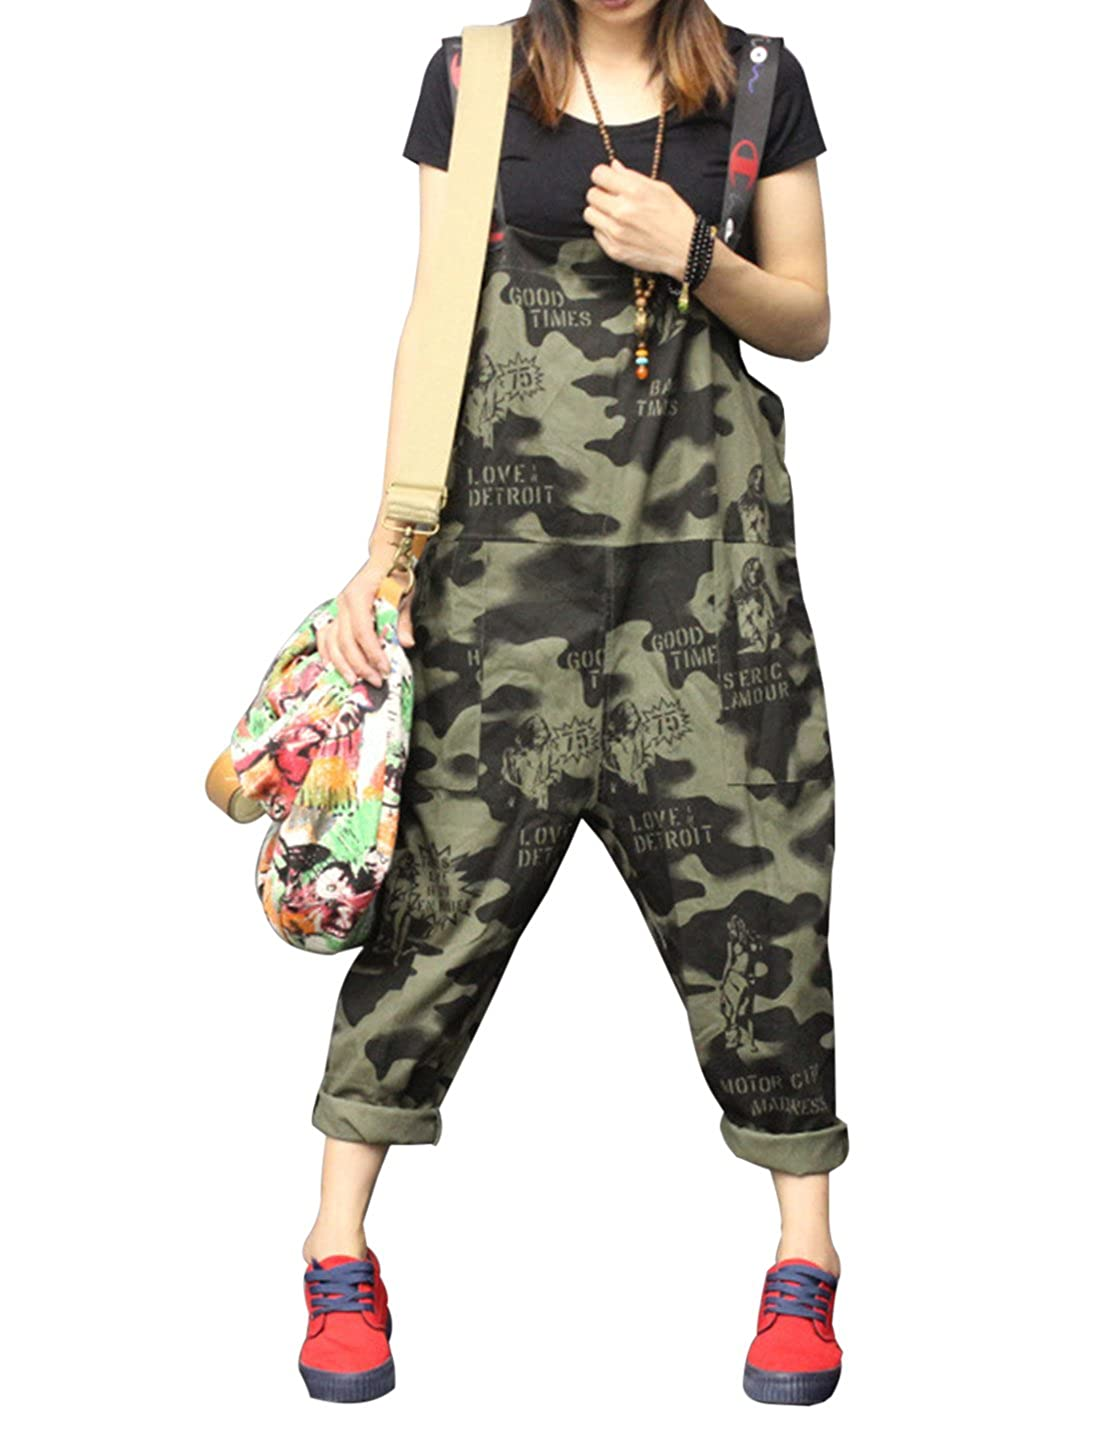 Gihuo Womens Denim Camo Rompers Low-Crotch Baggy Jumpsuits Overalls